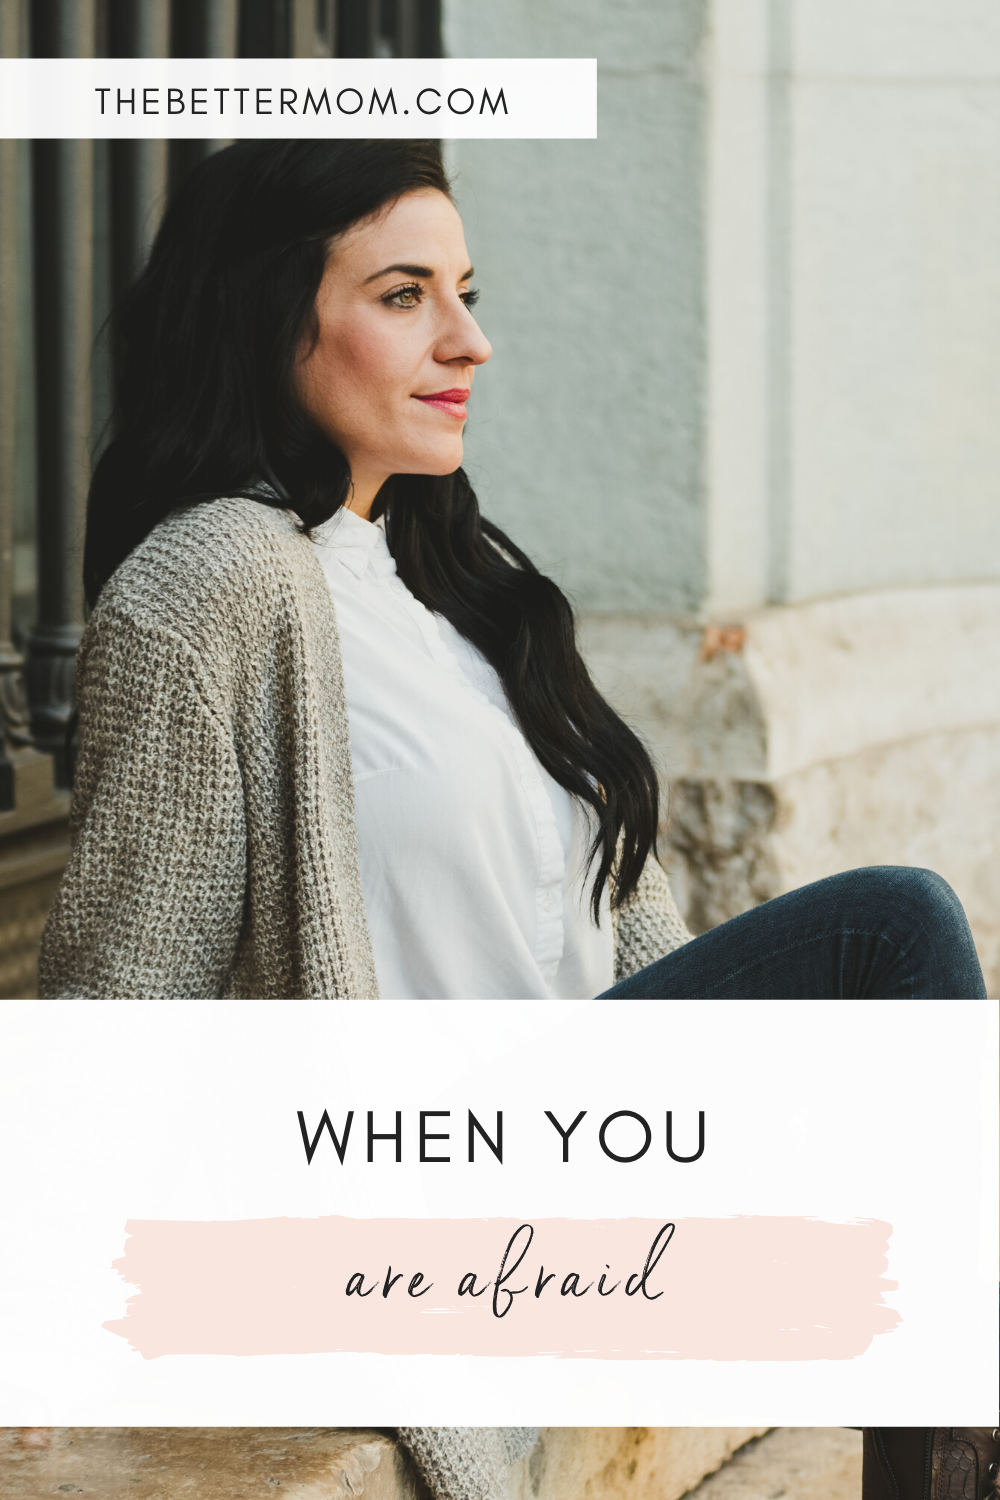 As moms, when we are filled with fear, it's easy for us to push it down and fake it until we make it. However, being honest about our fears can help us discover even more courage!